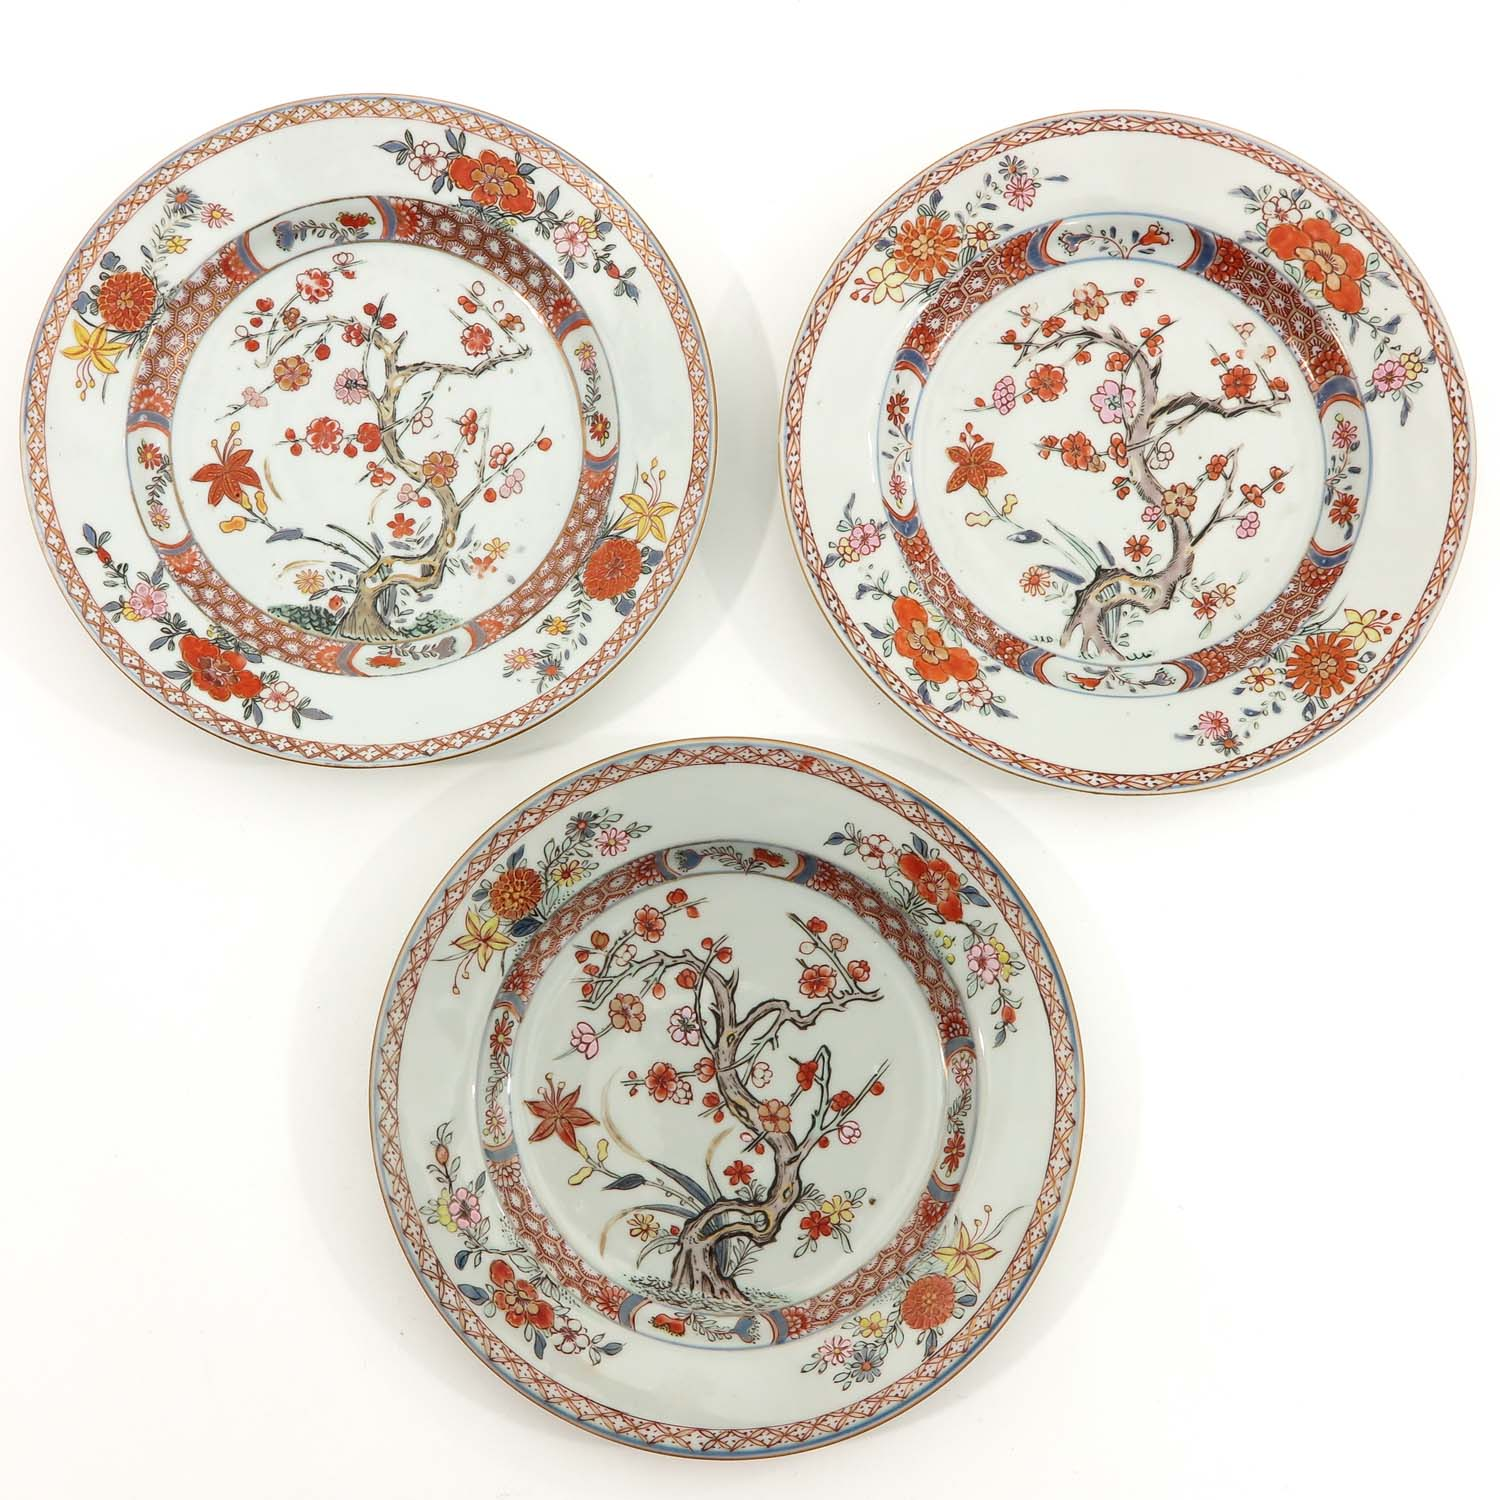 A Collection of 6 Polychrome Decor Plates - Image 5 of 9